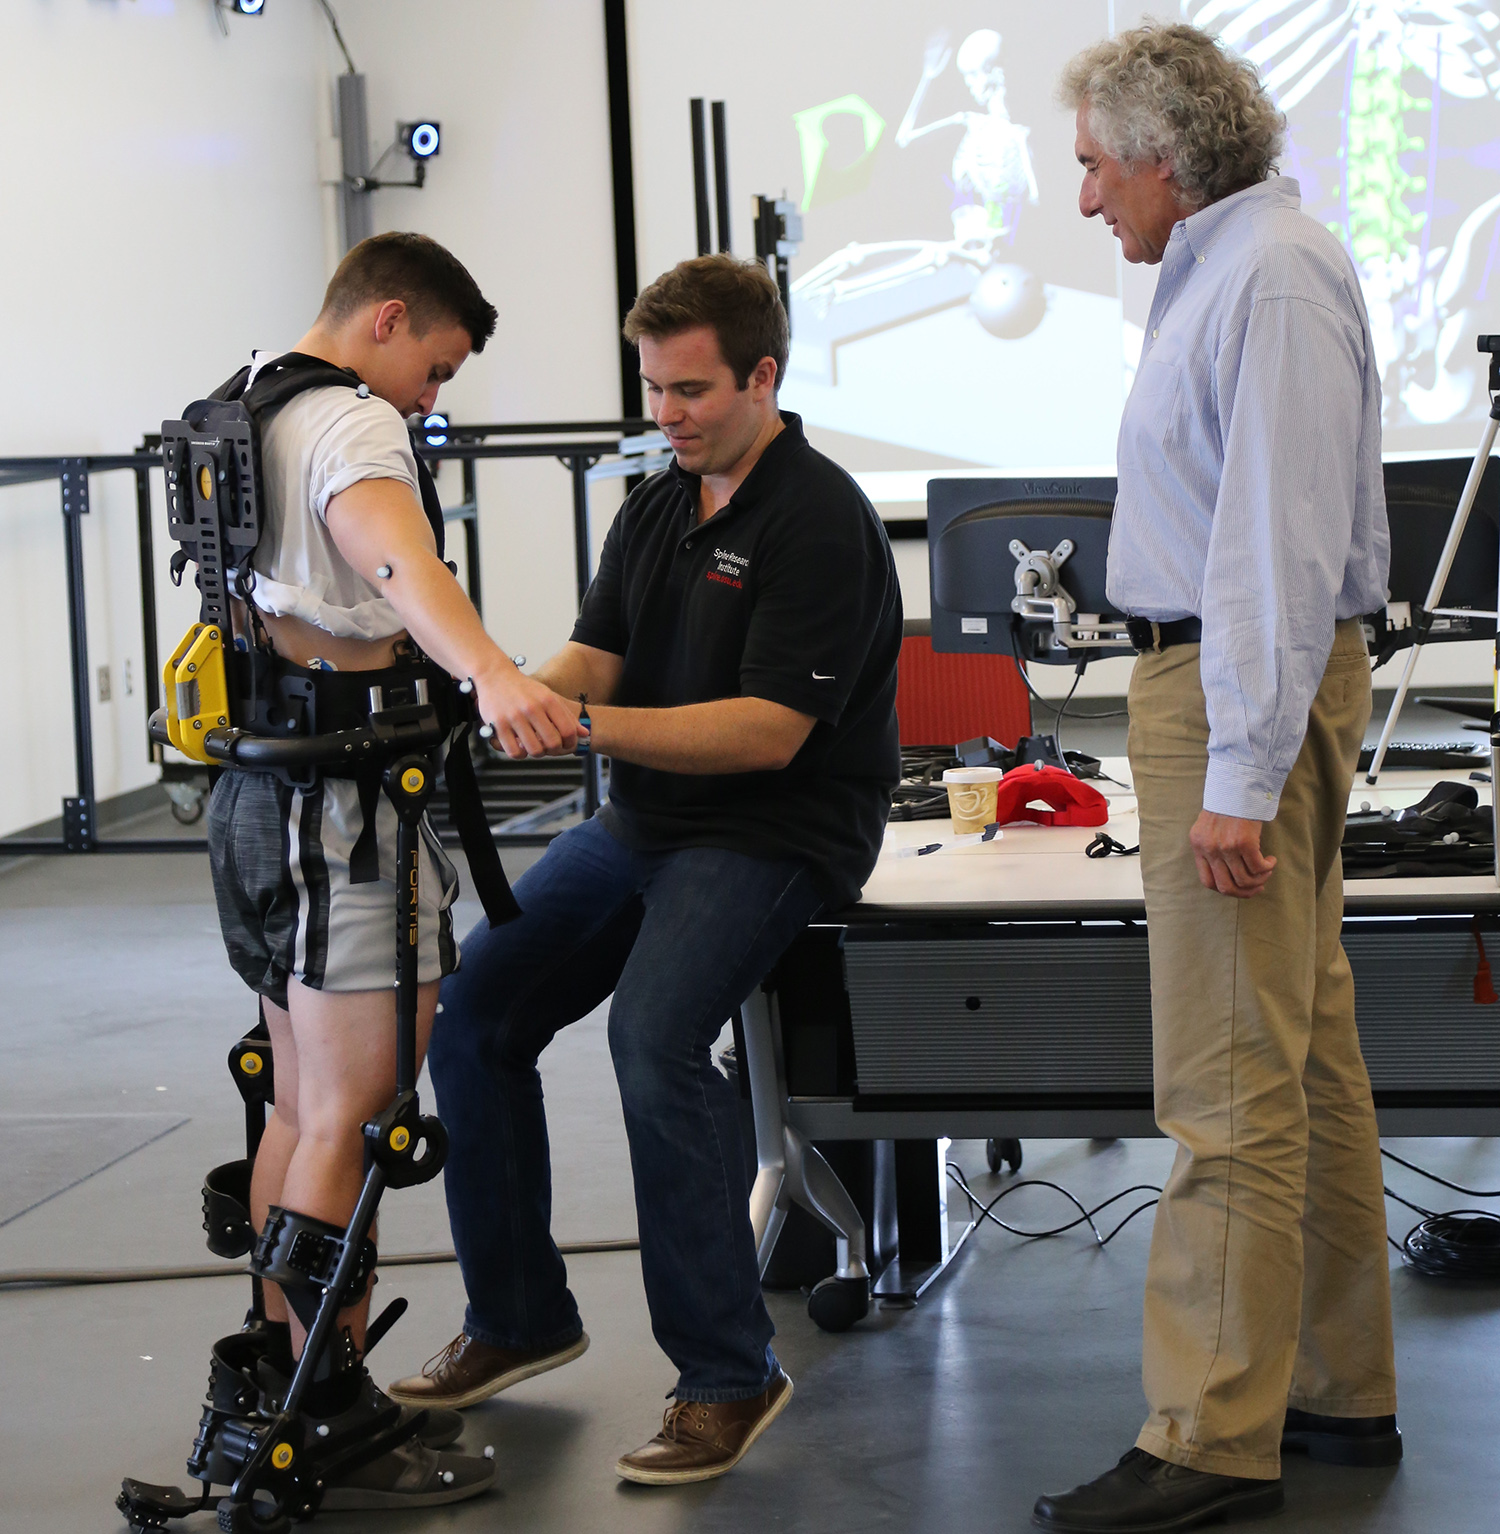 Spine Research Institute expands scope of NSF musculoskeletal innovation center